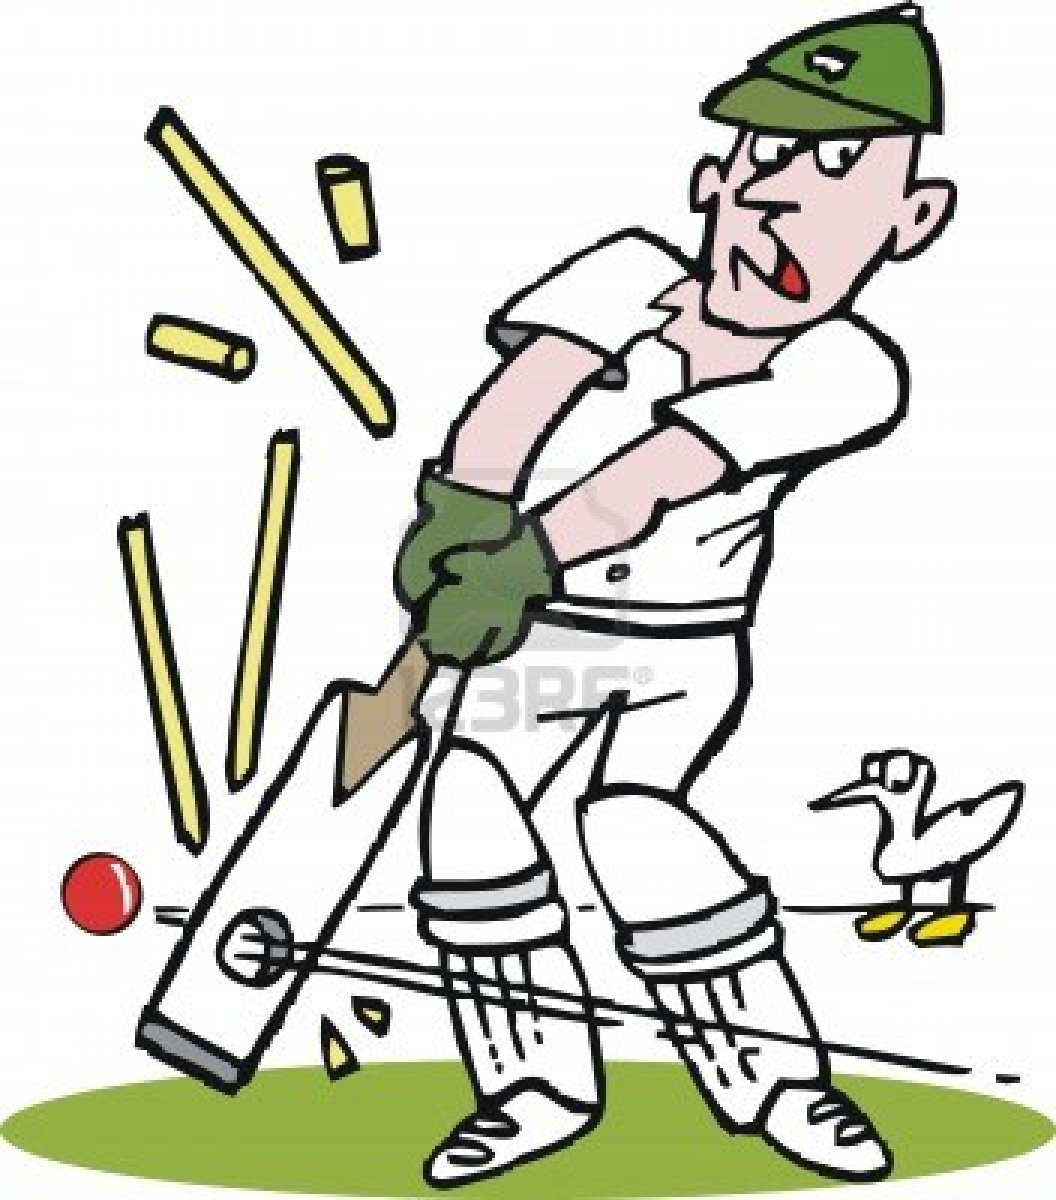 Free Cartoon Cricket, Download Free Clip Art, Free Clip Art.